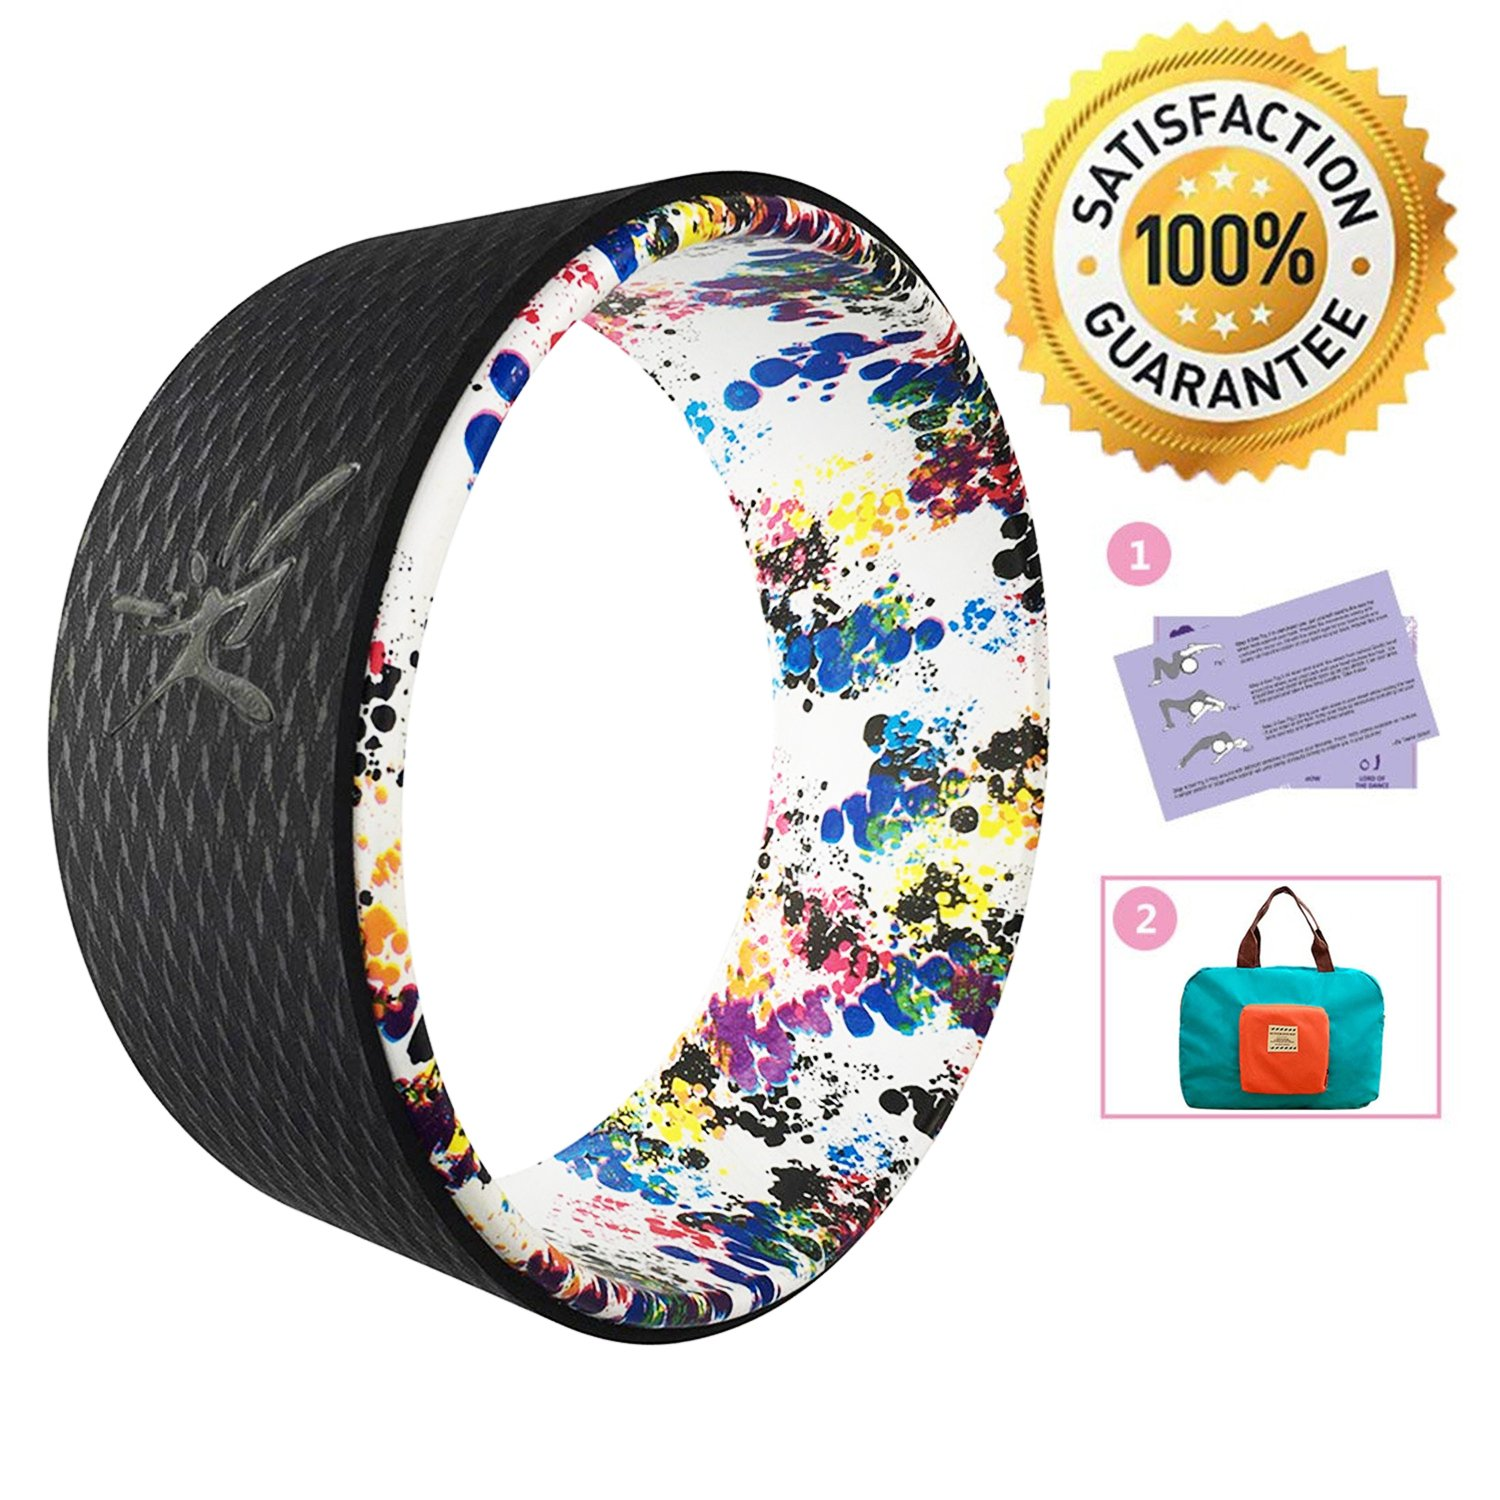 seeknfind 13 x 5 Inch Basic Yoga Wheel - Strongest & Comfortable Dharma Yoga Prop Wheel for All Yoga Poses Perfect Accessory for Stretching Increasing Flexibility and Improving Backbends (7)